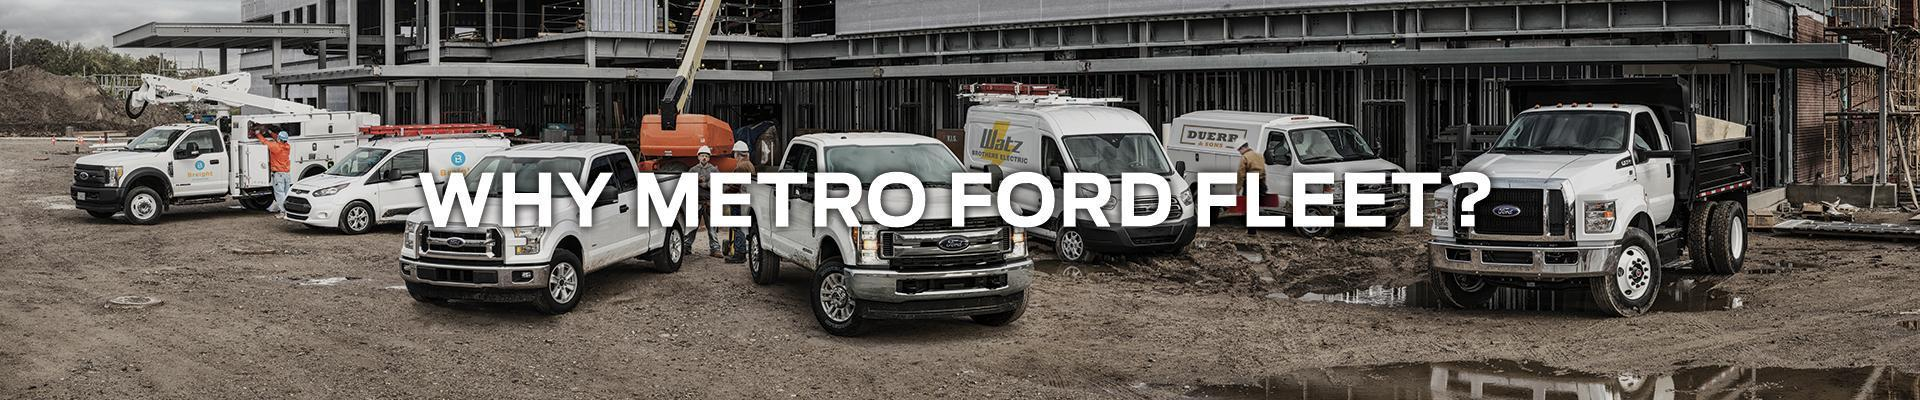 Why Metro Ford Fleet?